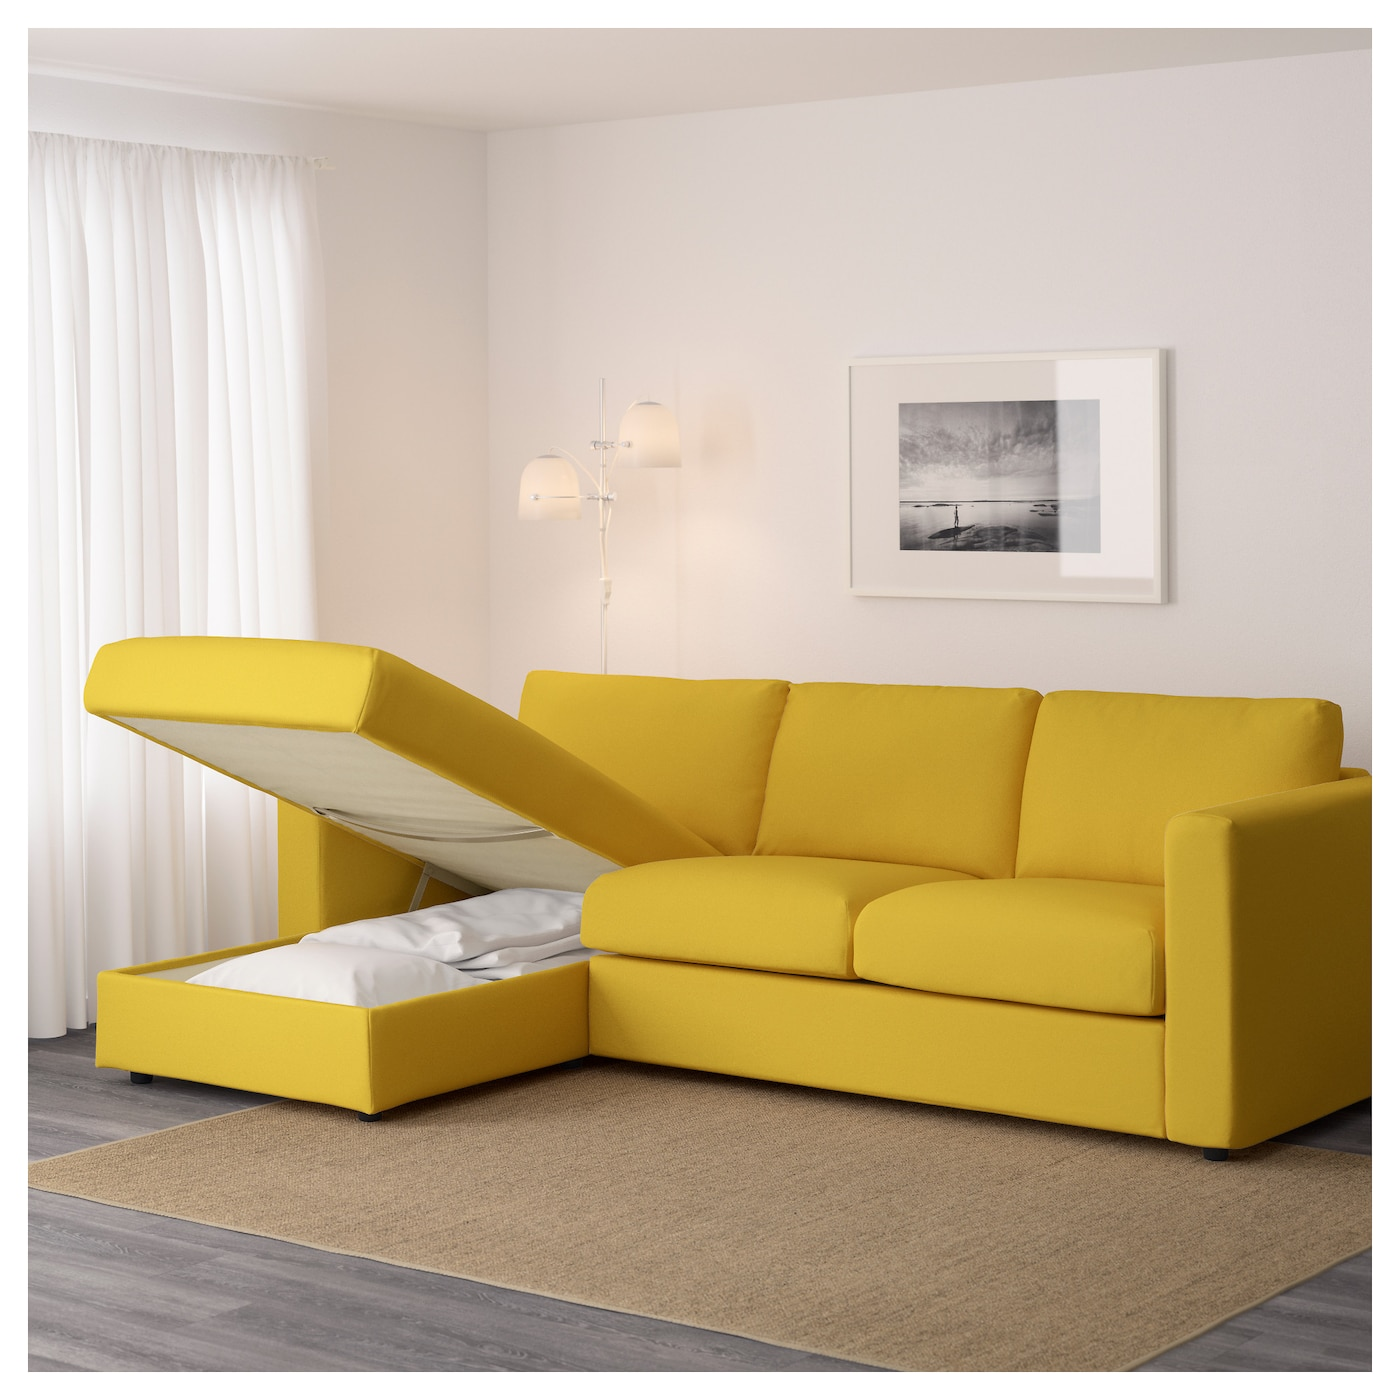 sofa von yellow inspirierendes design f r wohnm bel. Black Bedroom Furniture Sets. Home Design Ideas